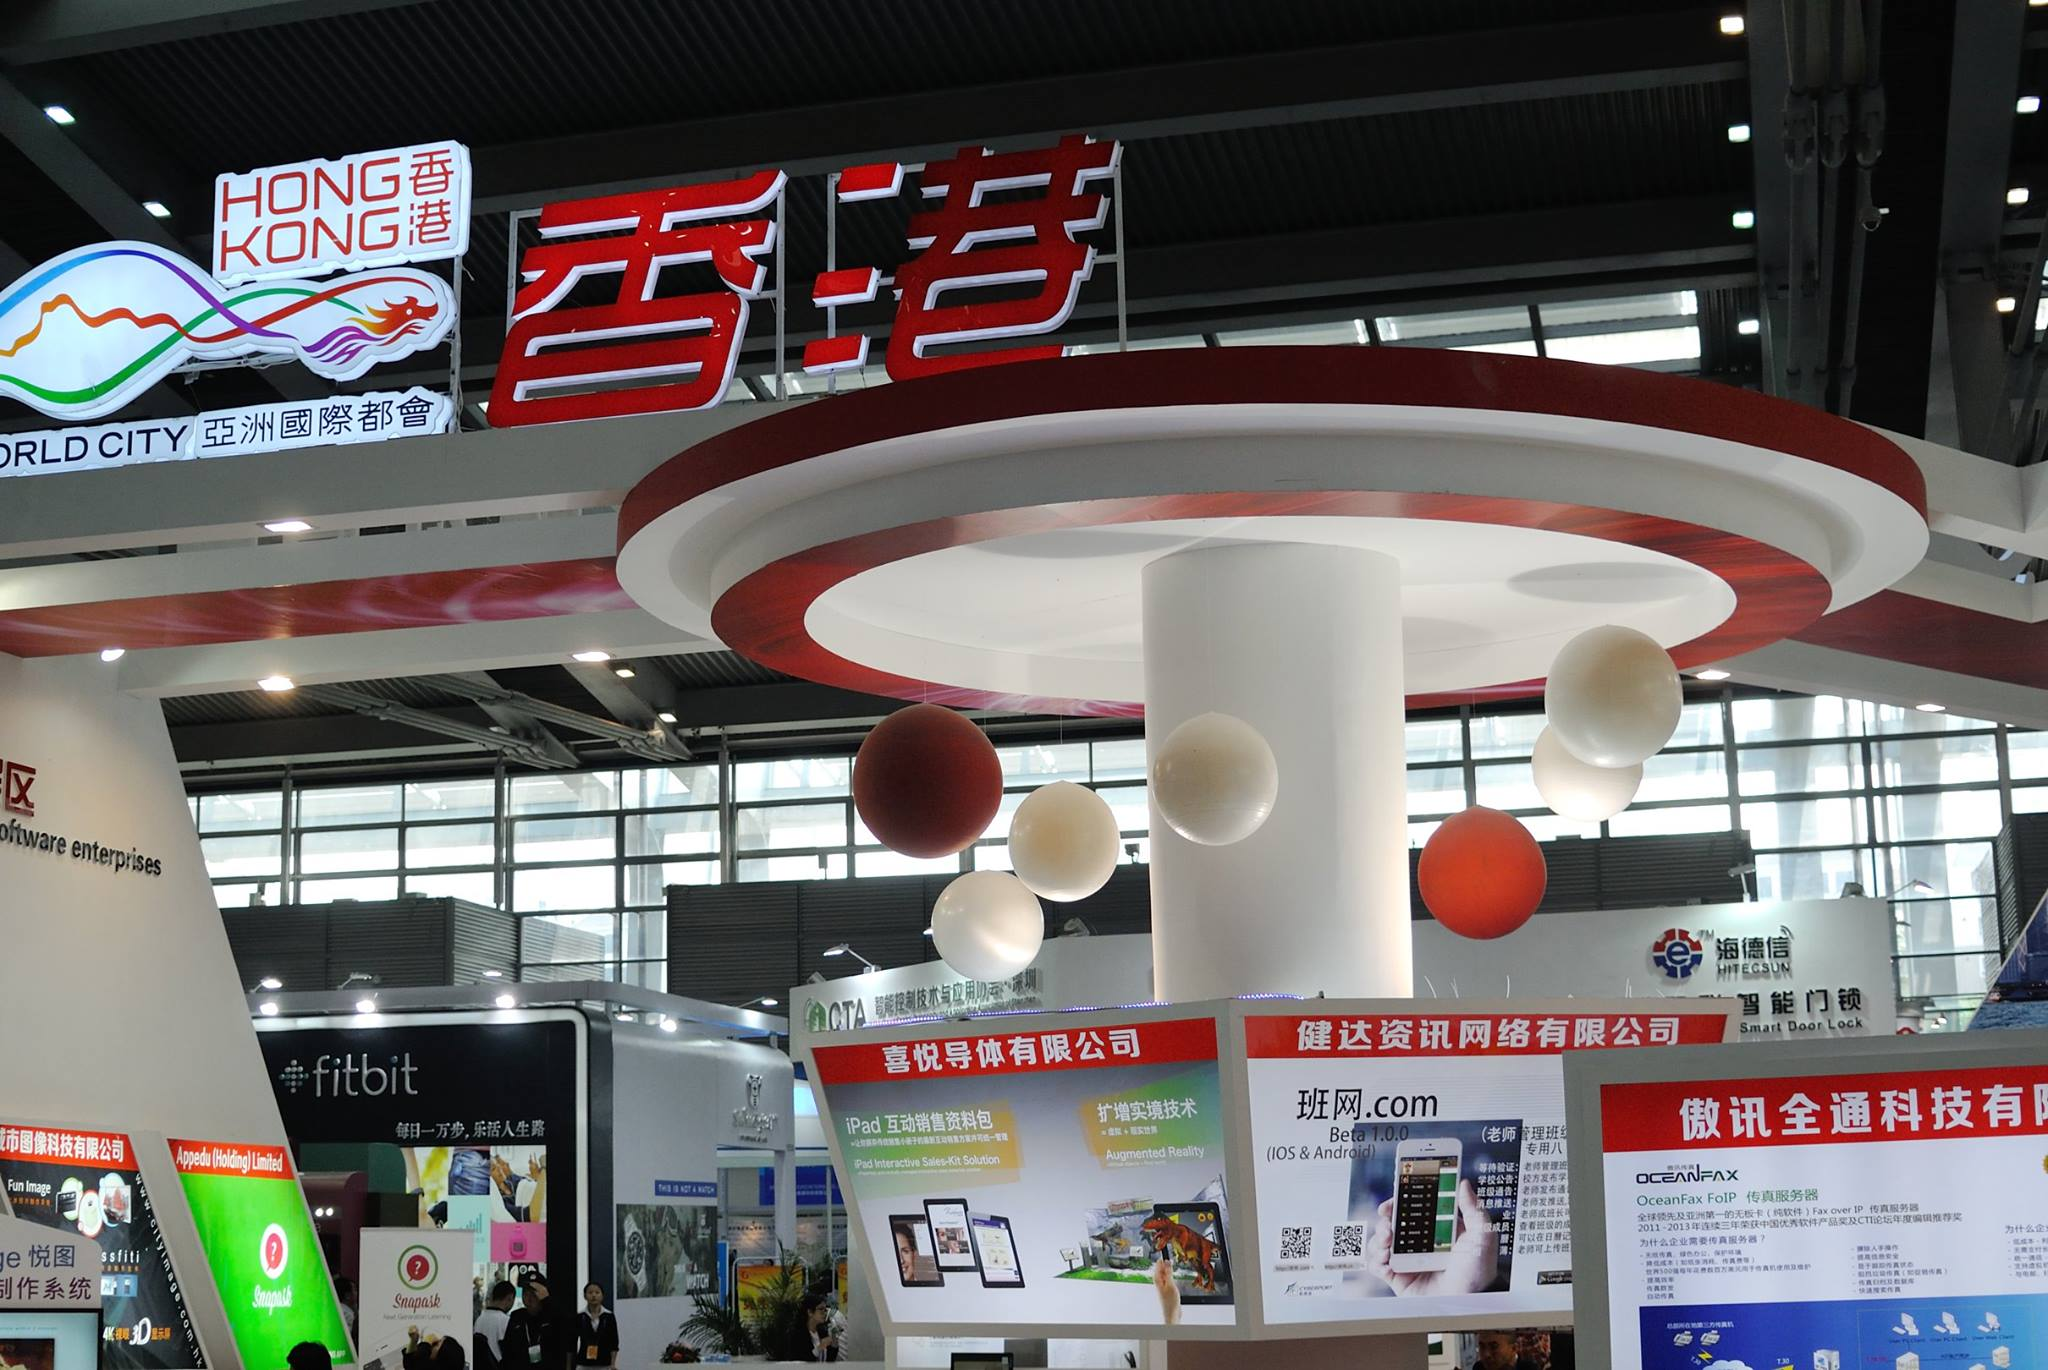 HKSiA_Booth_Front1.jpg